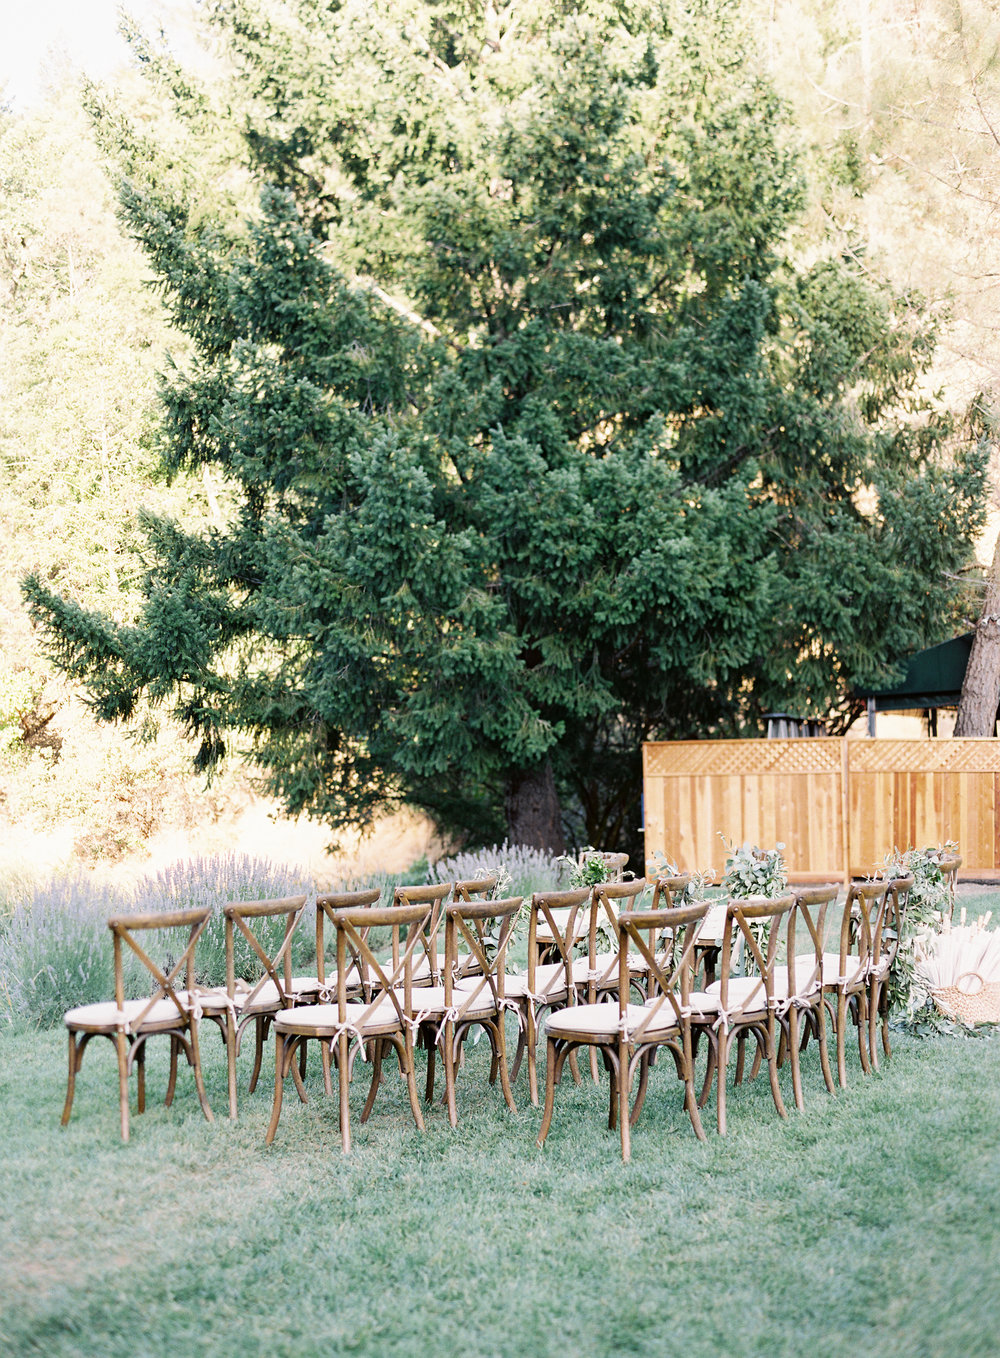 Napa Wedding Photographer - Meghan Mehan Photography _028.jpg